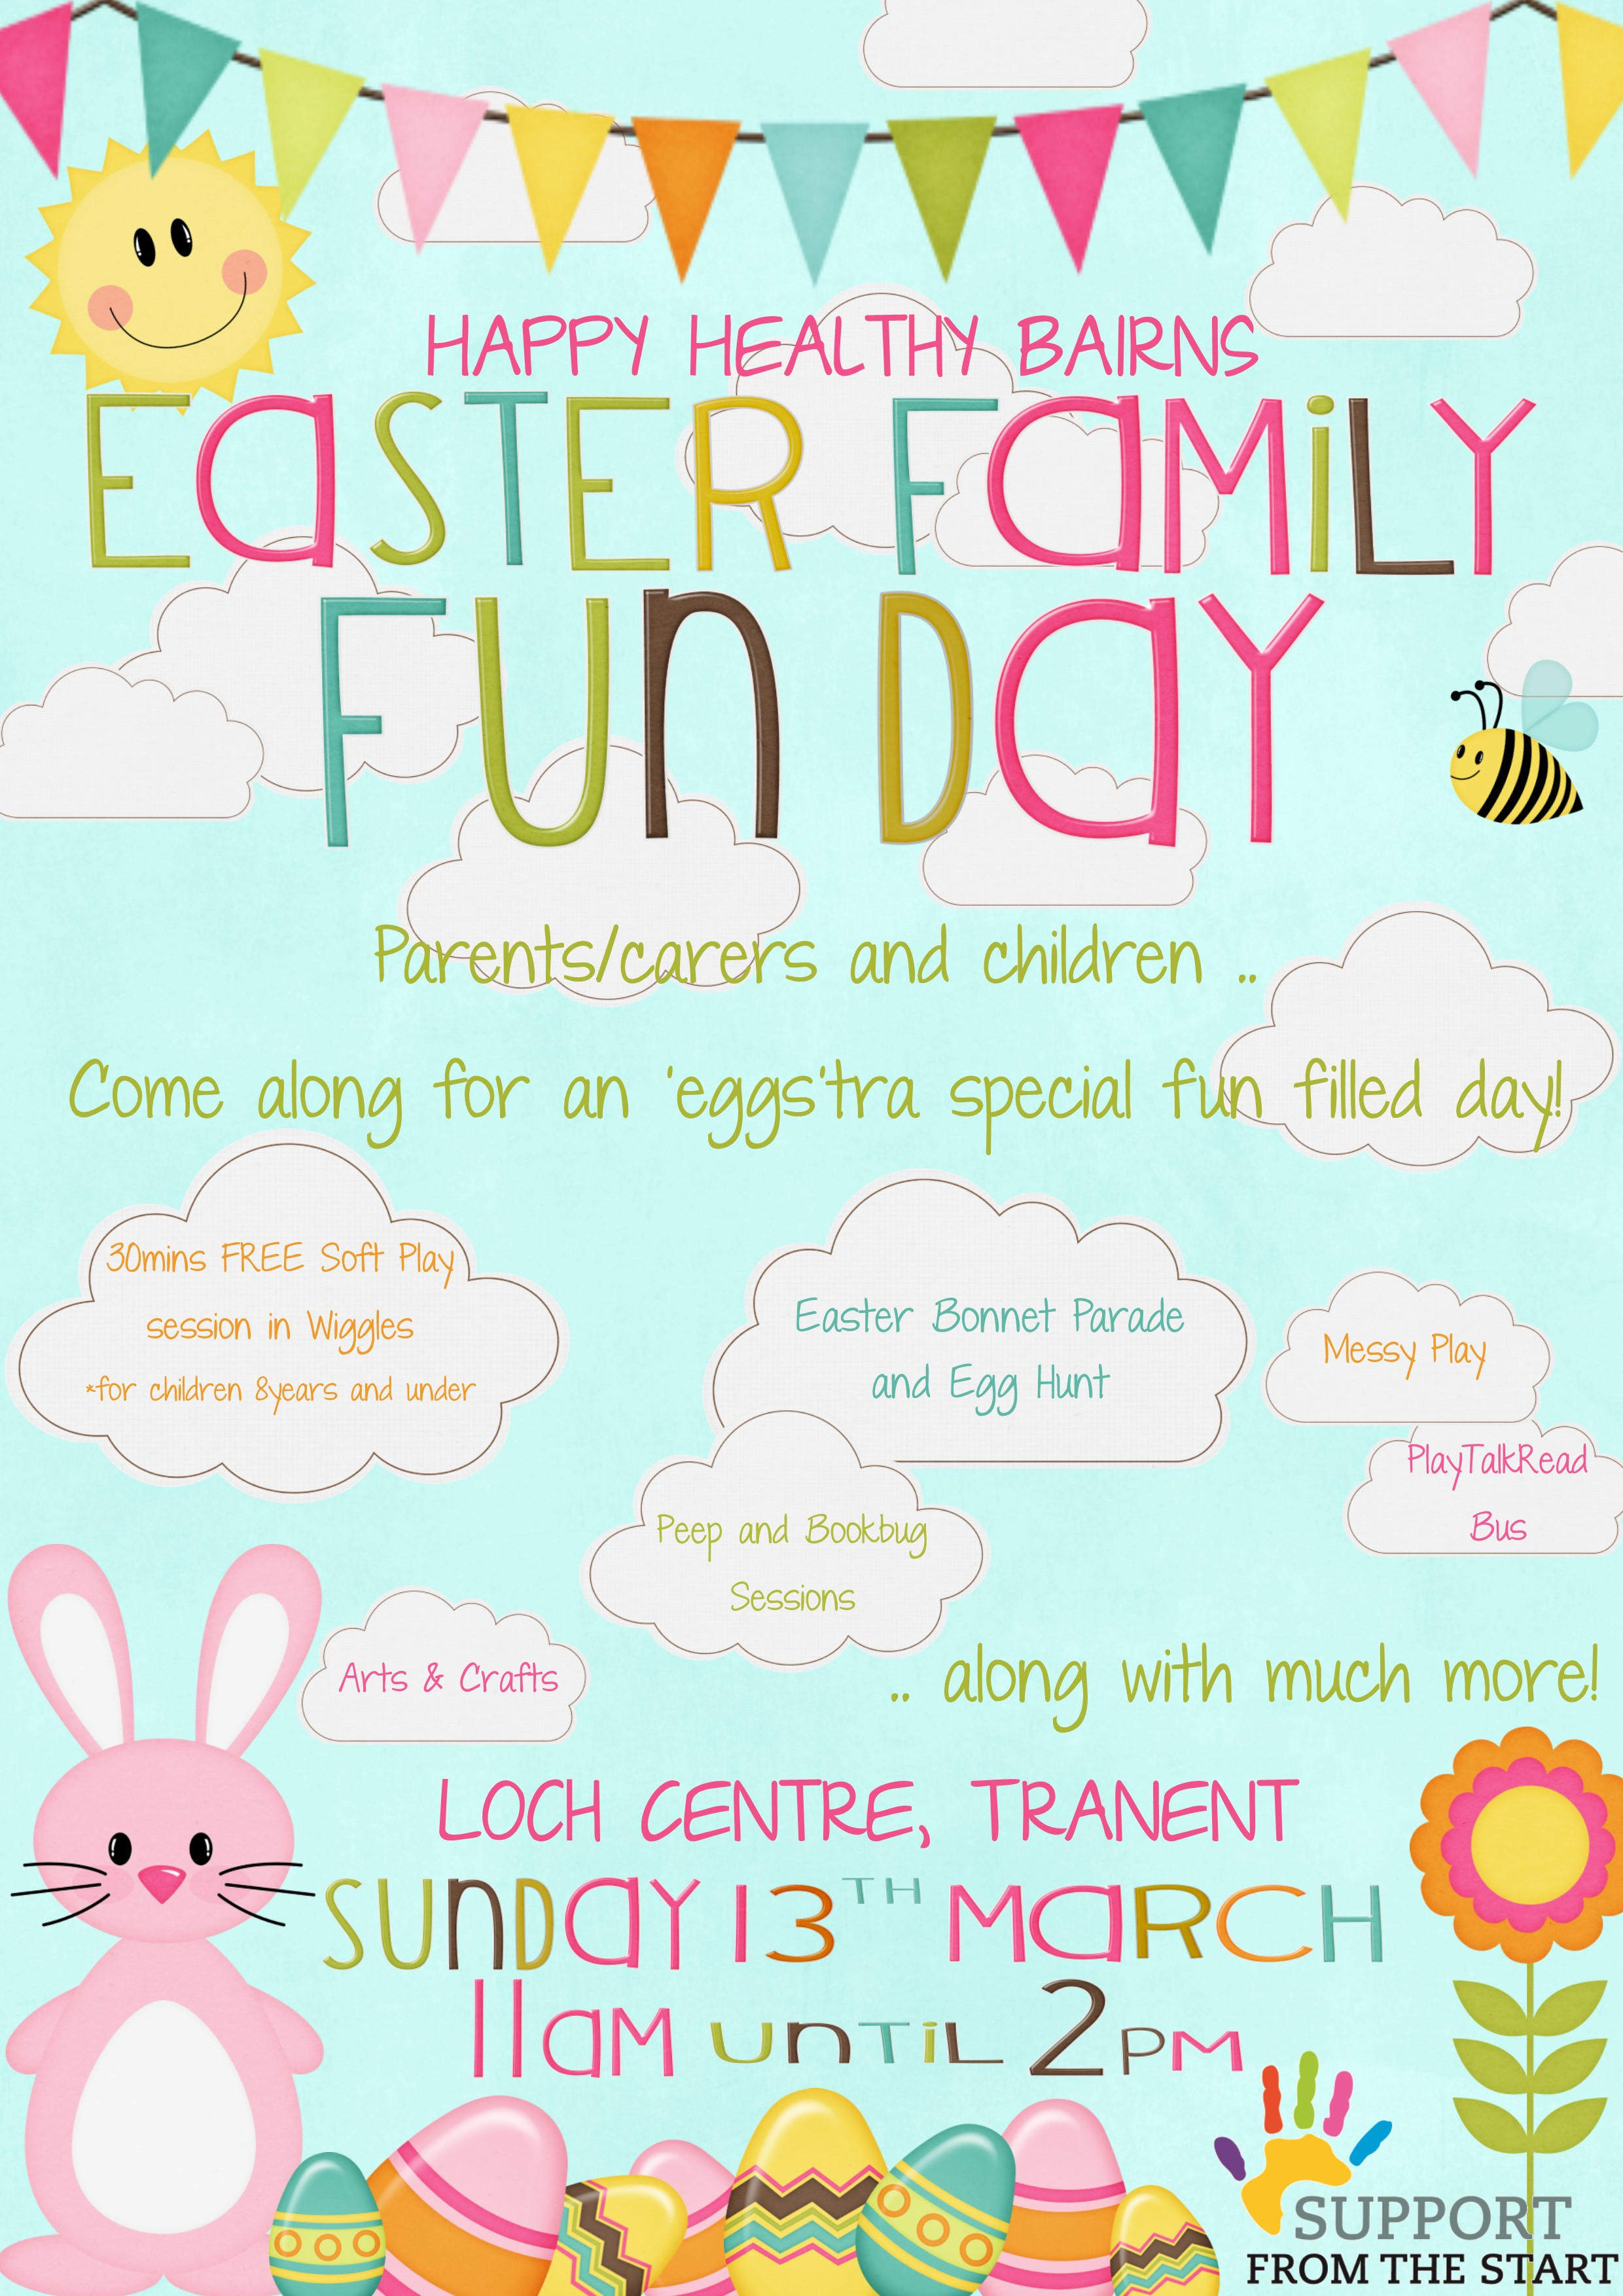 Easter family fun day at ripponlea choice image gift and gift easter family fun day ideas choice image gift and gift ideas sample easter family fun day negle Images